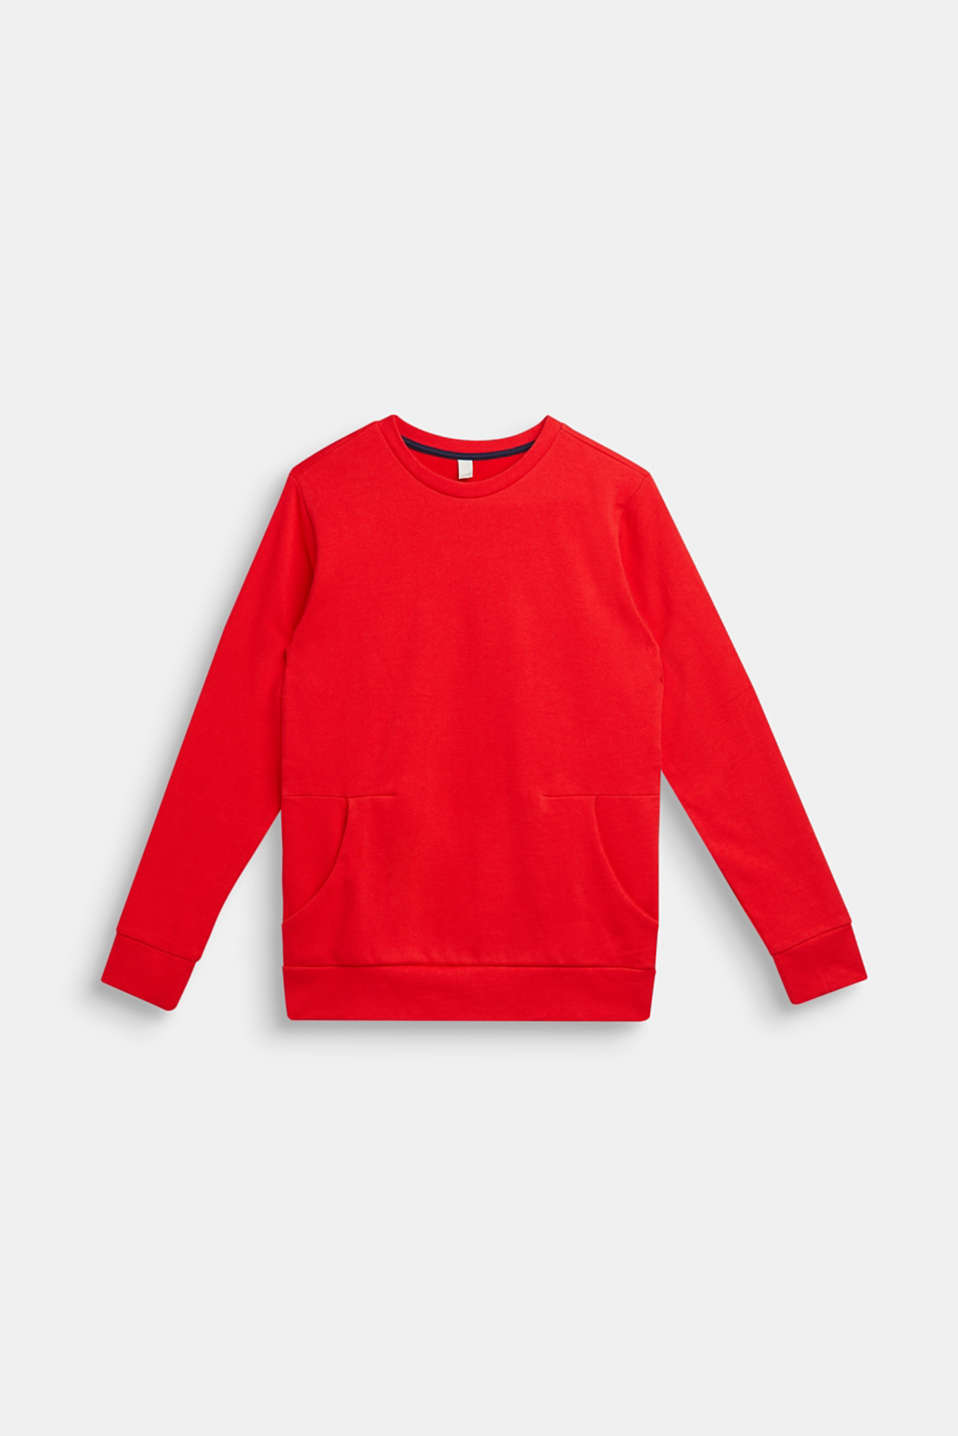 Logo print sweatshirt, 100% cotton, LCRED, detail image number 1